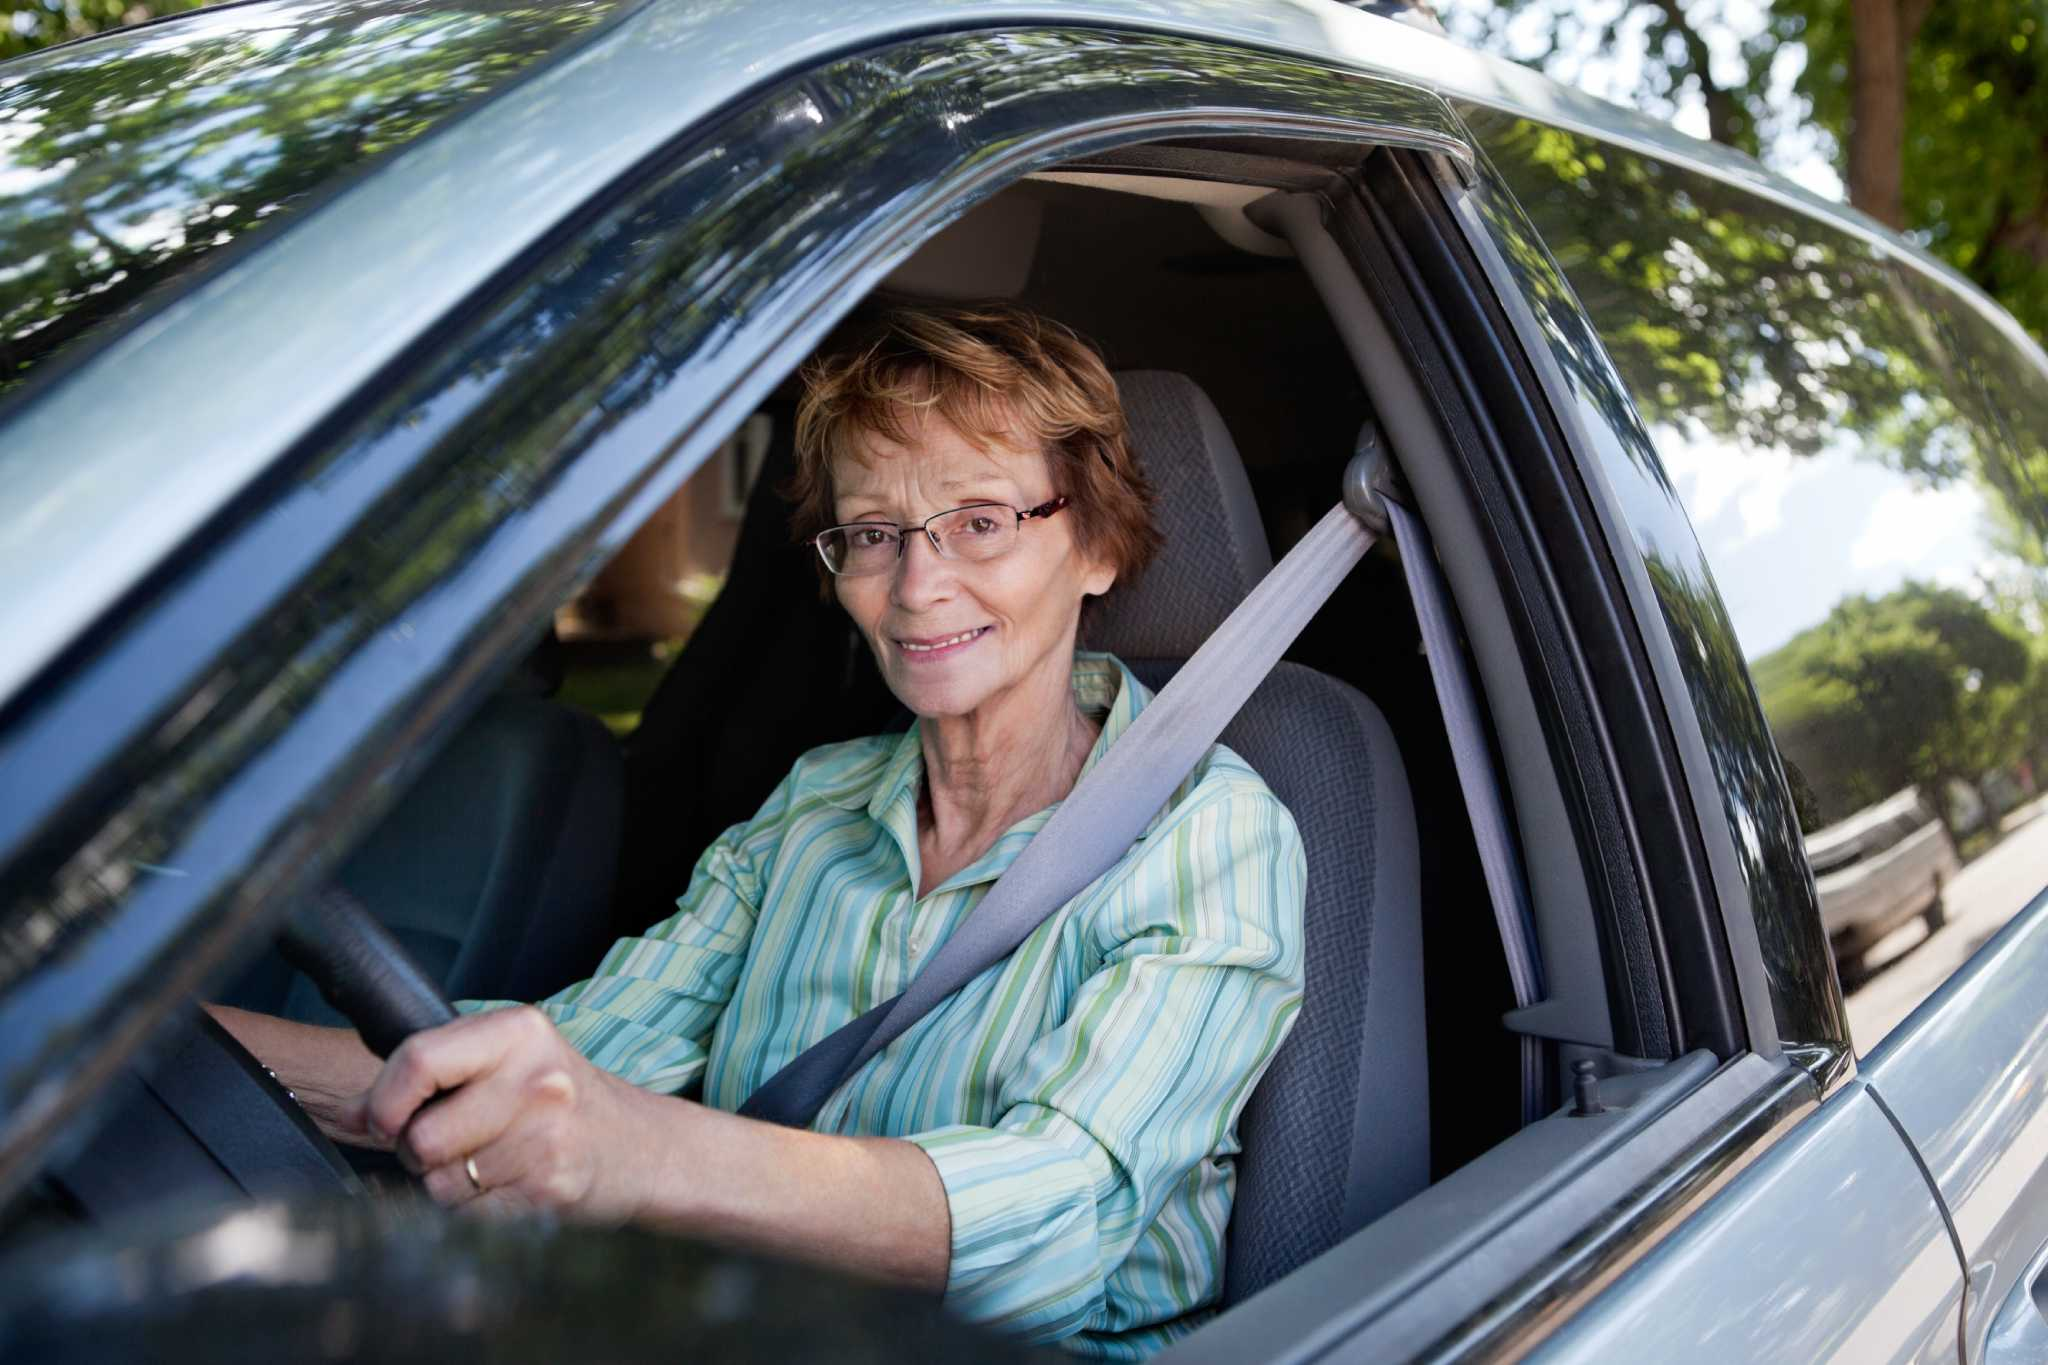 Aarp driver safety course